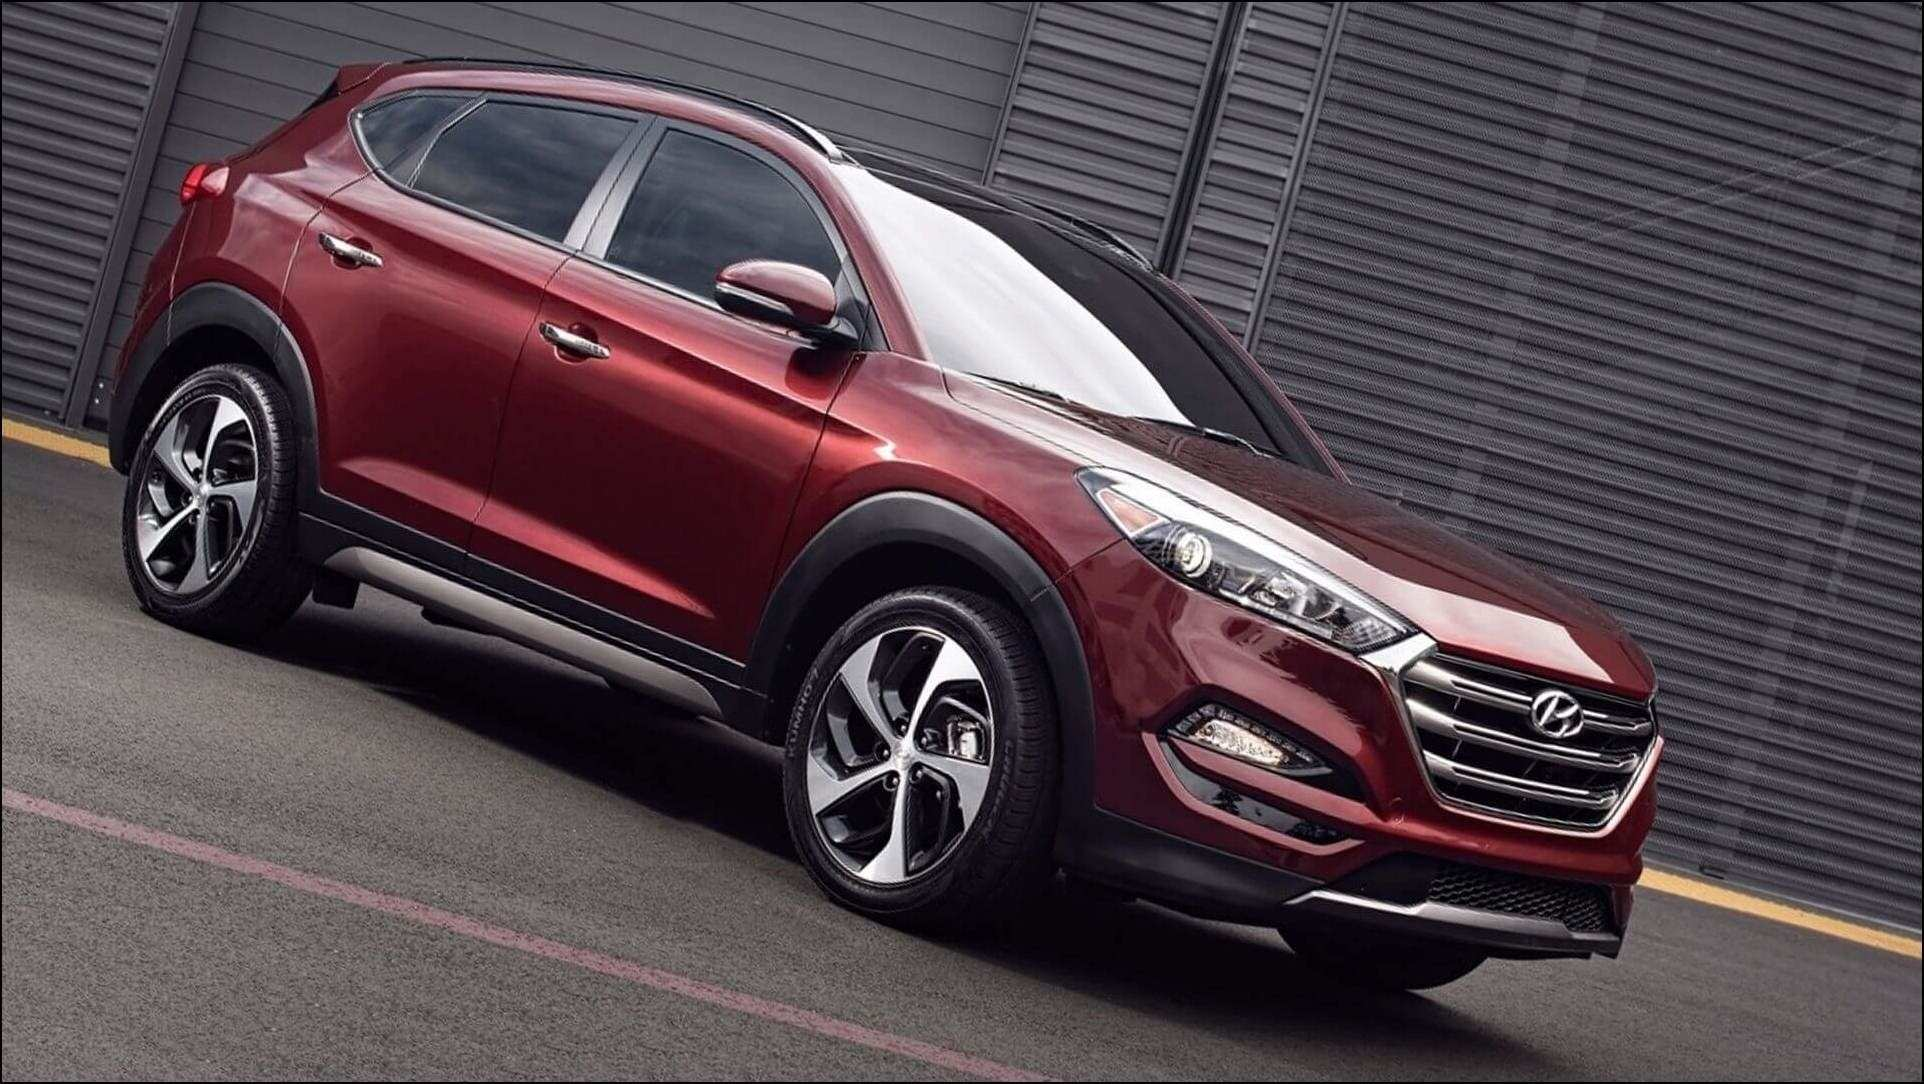 19 A When Will The 2020 Hyundai Tucson Be Released Redesign and Review